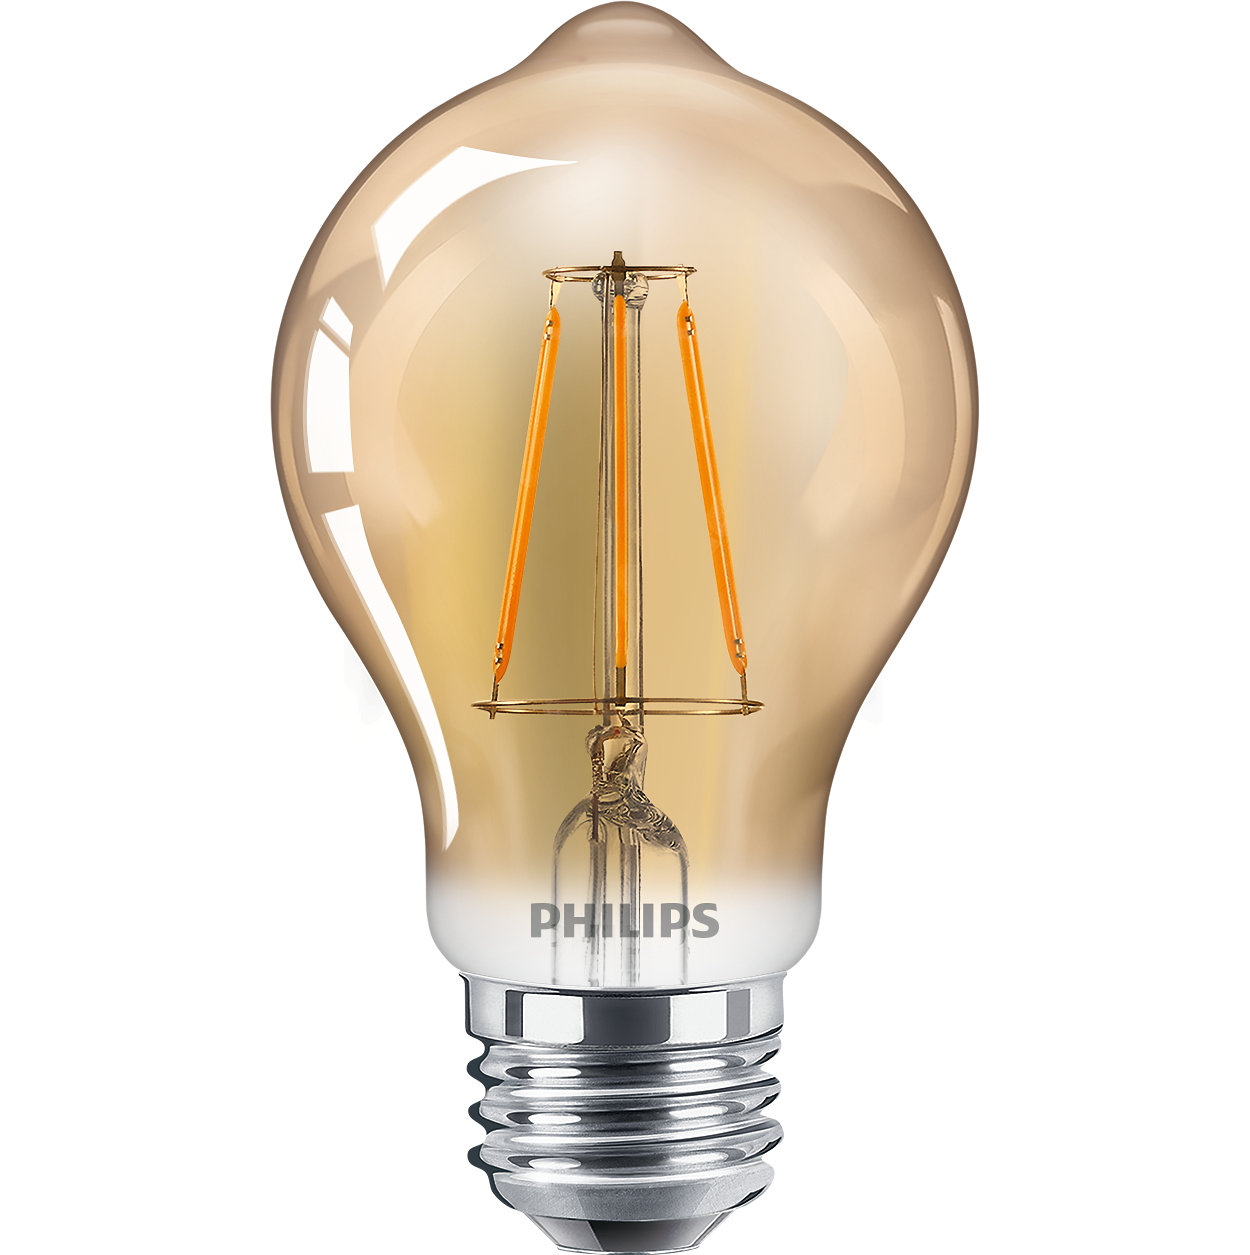 Create a vintage look while saving money with LED technology